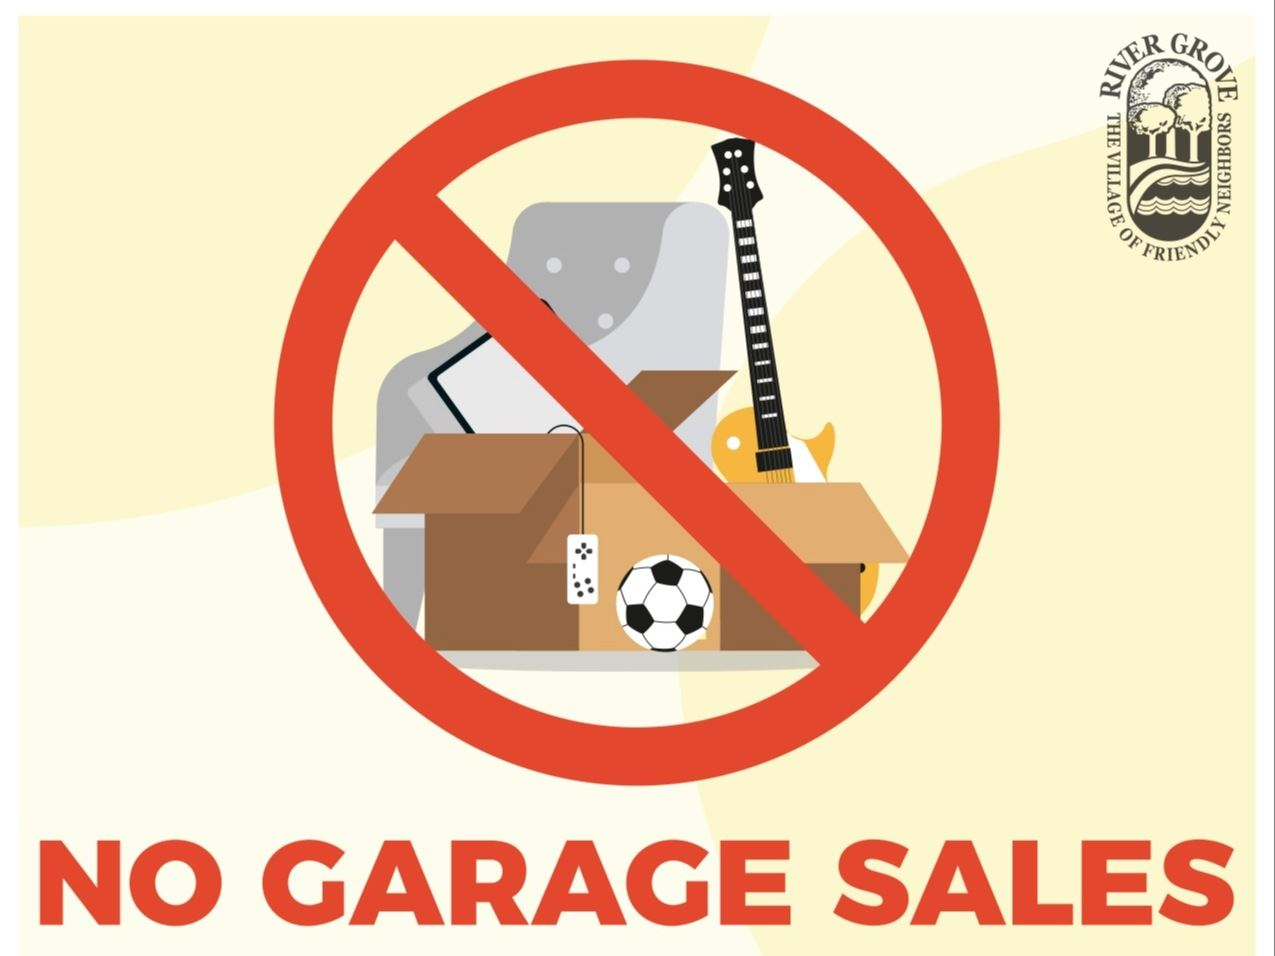 Flyer reminding residents no garage sales allowed